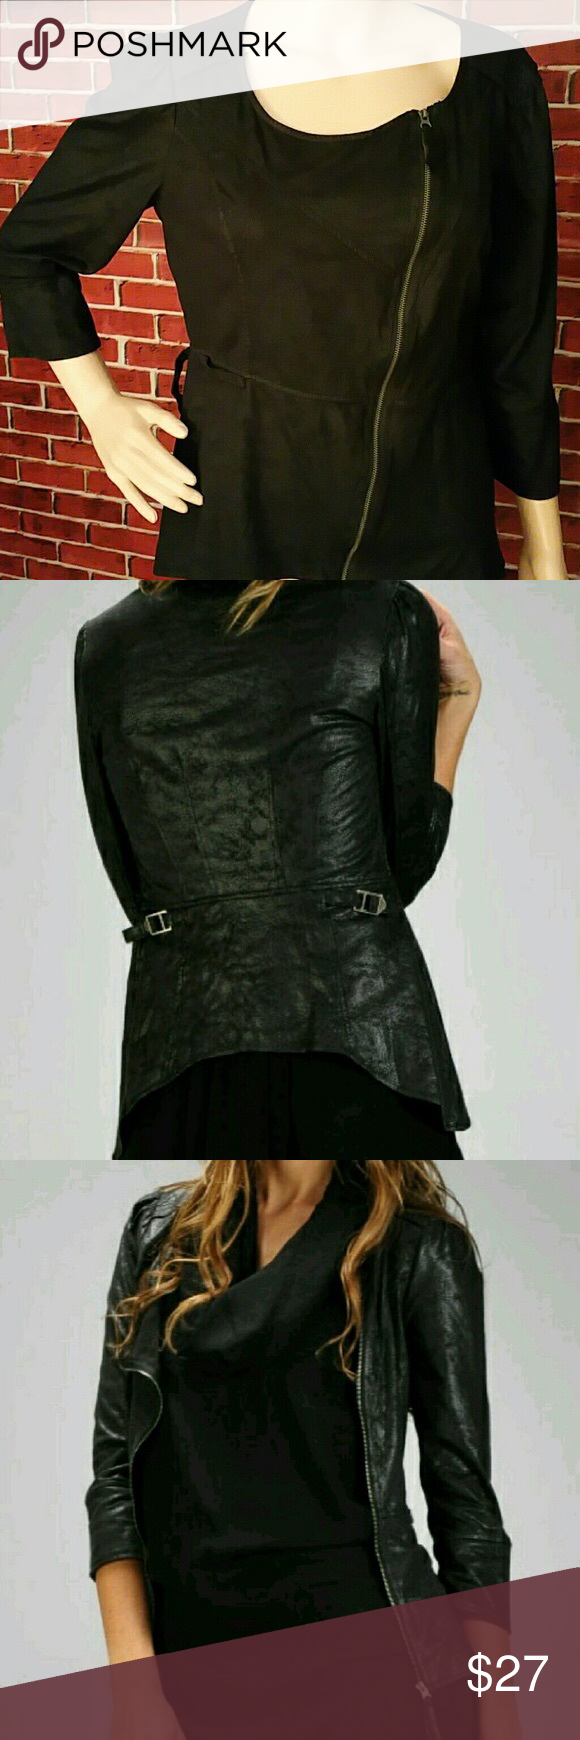 Faux Leather Jacket Faux Leather Jacket. This faux leather